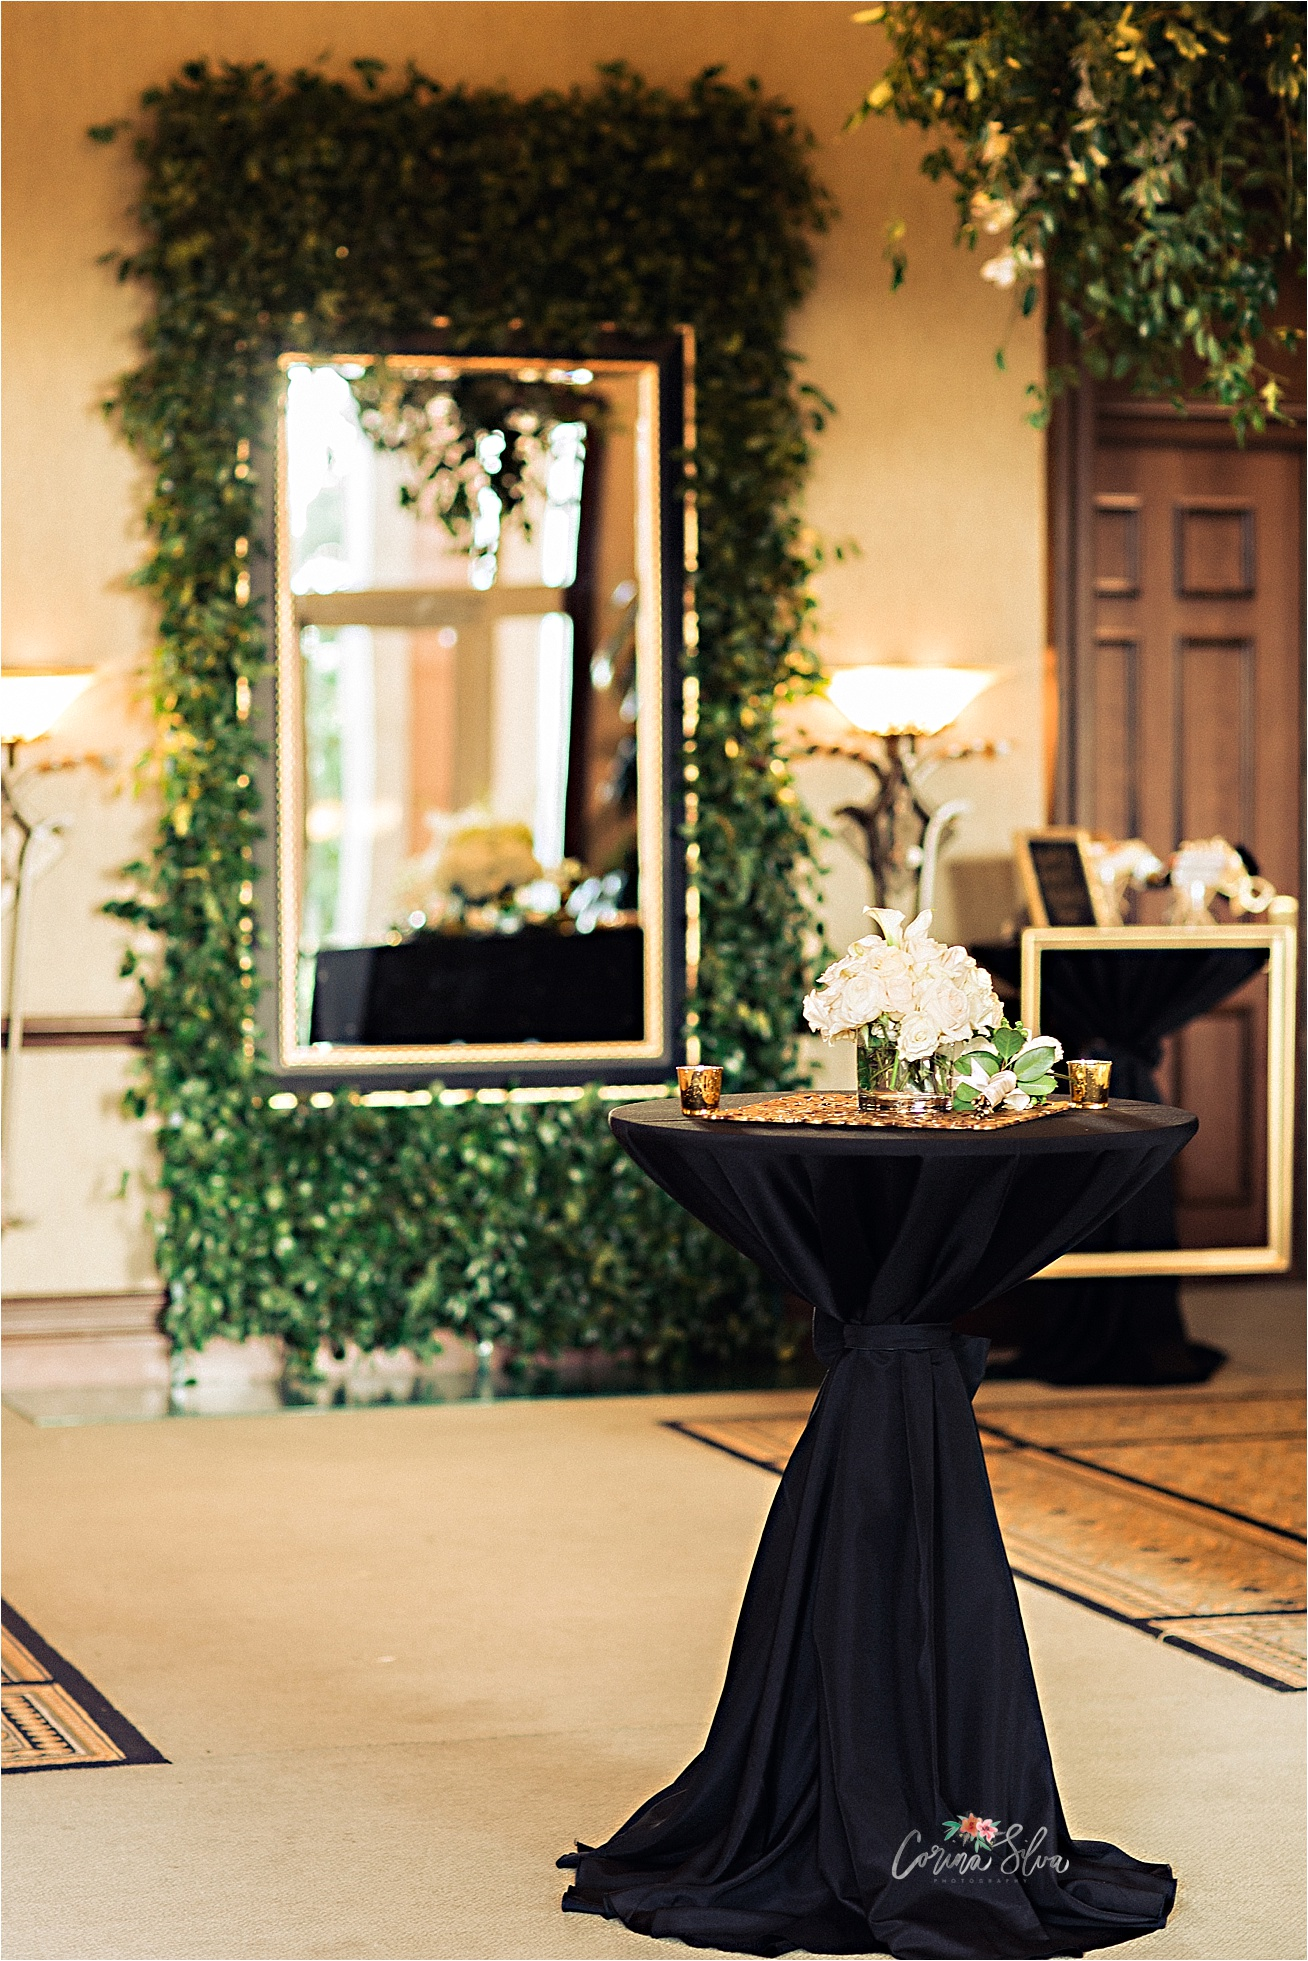 RSG-Event-and-Designs-luxury-wedding-decor-photos, Corina-Silva-Studios_0004.jpg